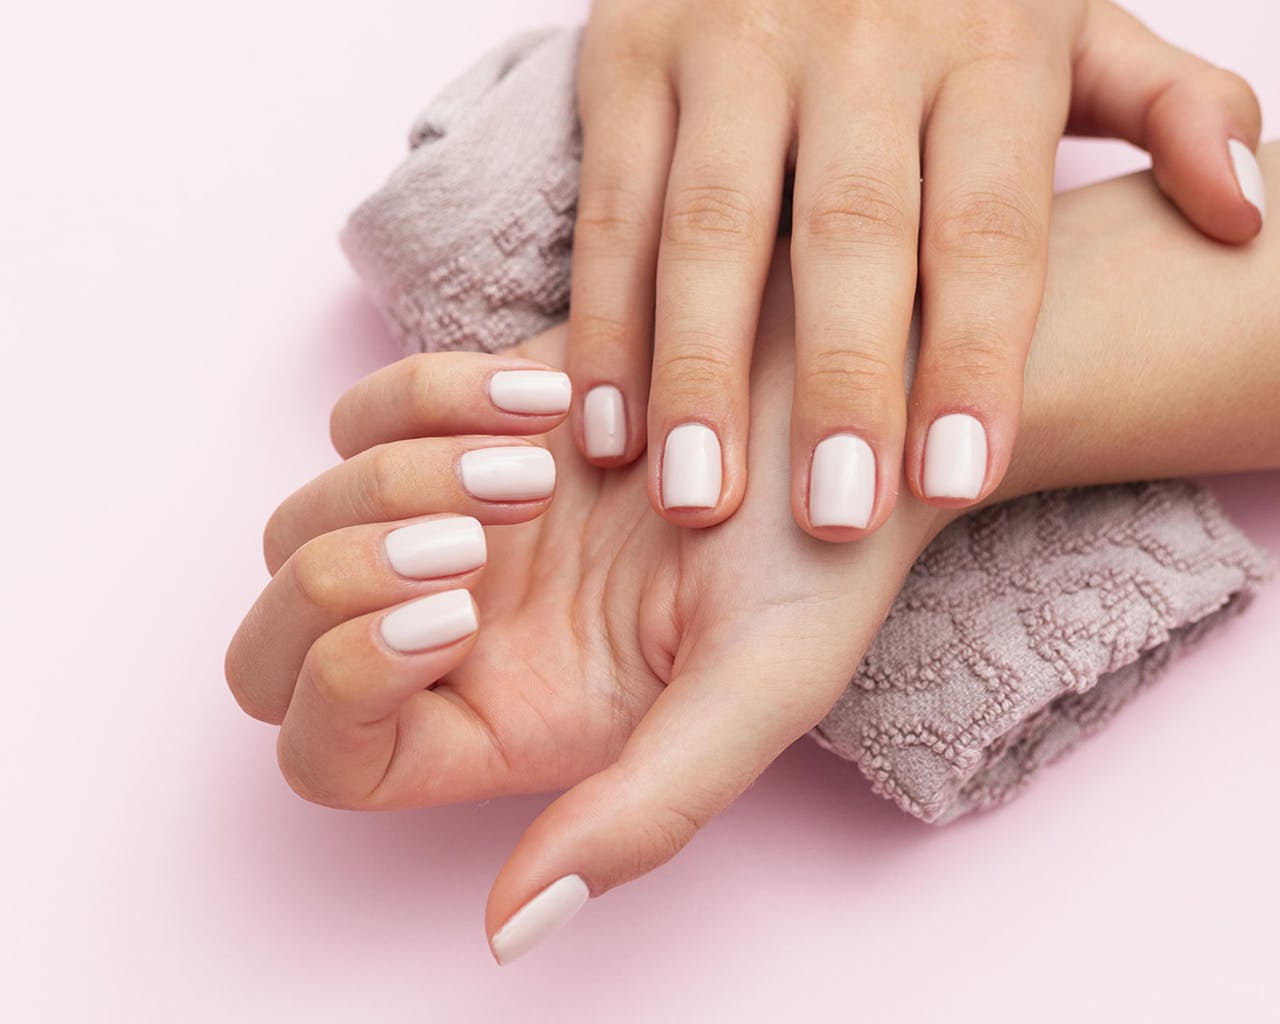 Here's Why You Should Ditch The Acrylics And Use Press-On Nails Instead